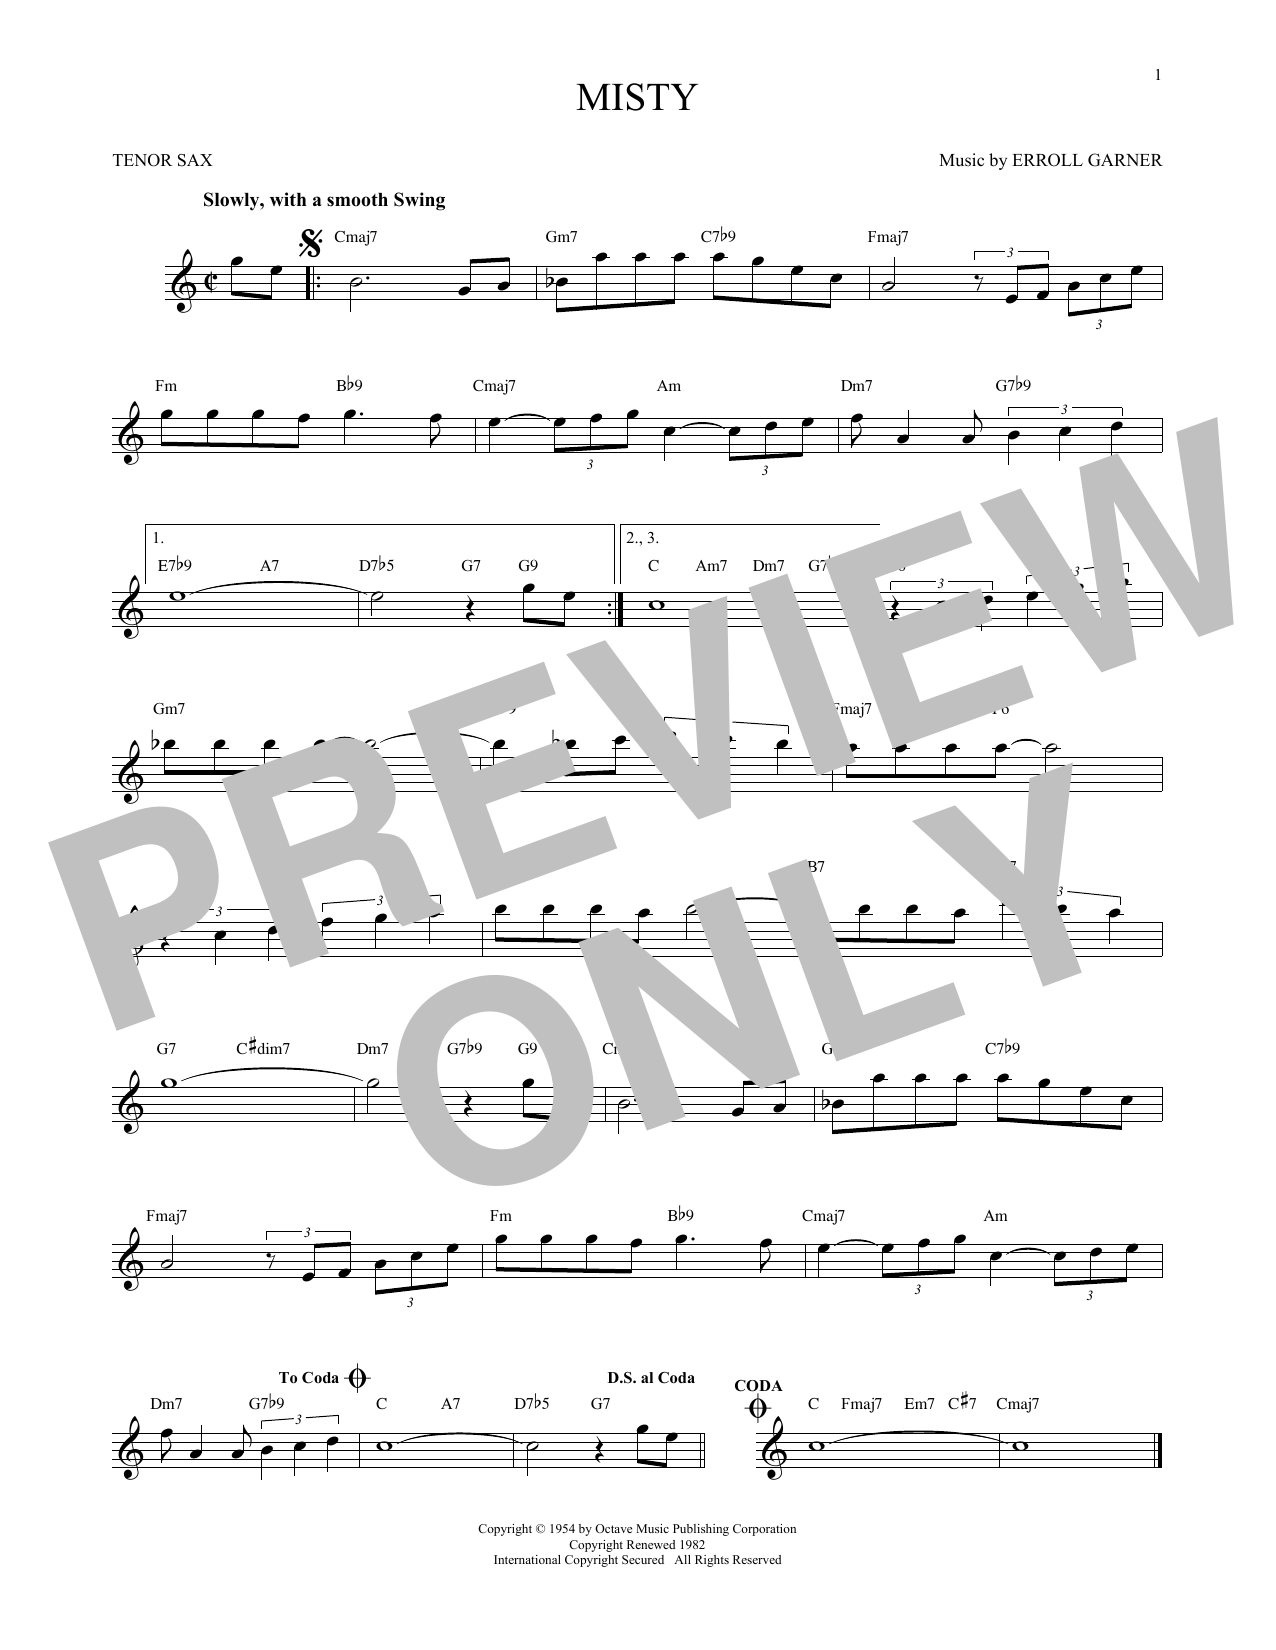 Erroll Garner 'Misty' Sheet Music Notes, Chords | Download Printable Tenor  Sax Solo - SKU: 171409